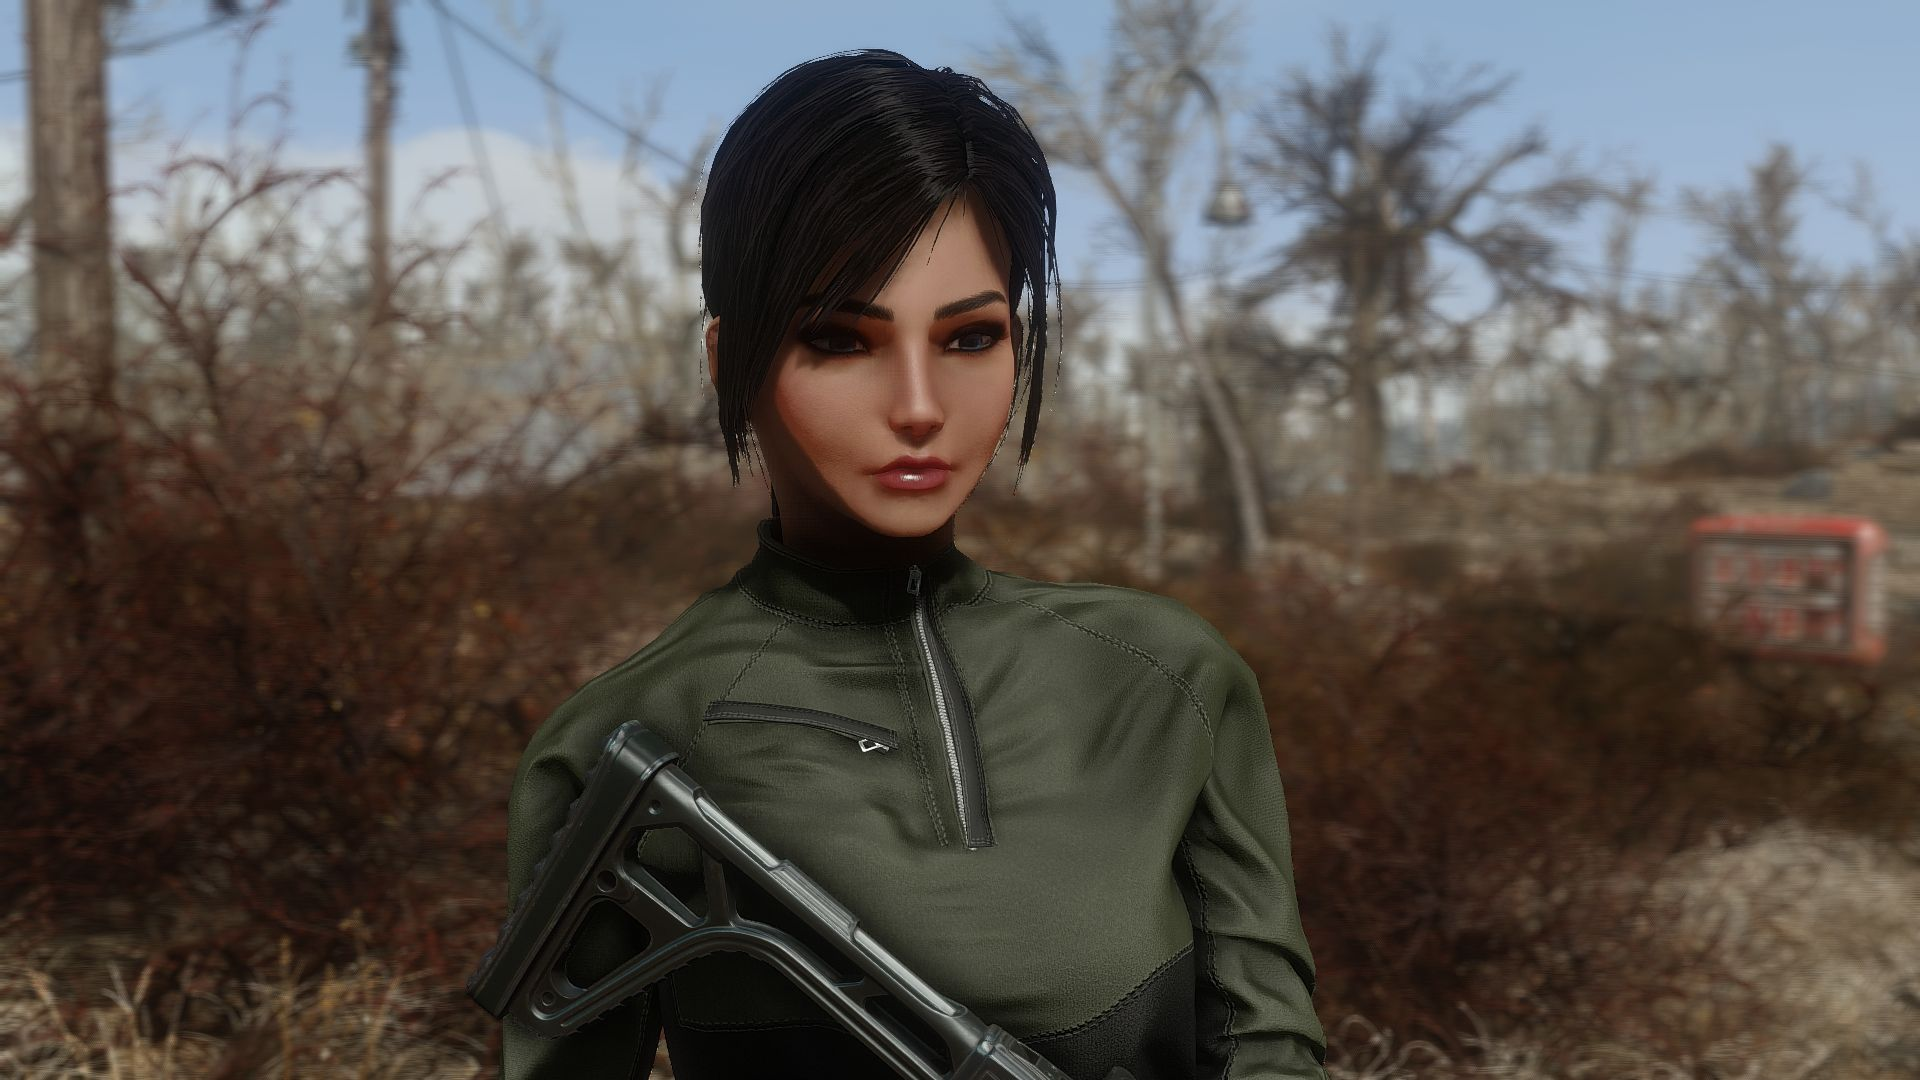 /7-best-fallout-4-body-mods-and-face-mods-kc2537as feature image